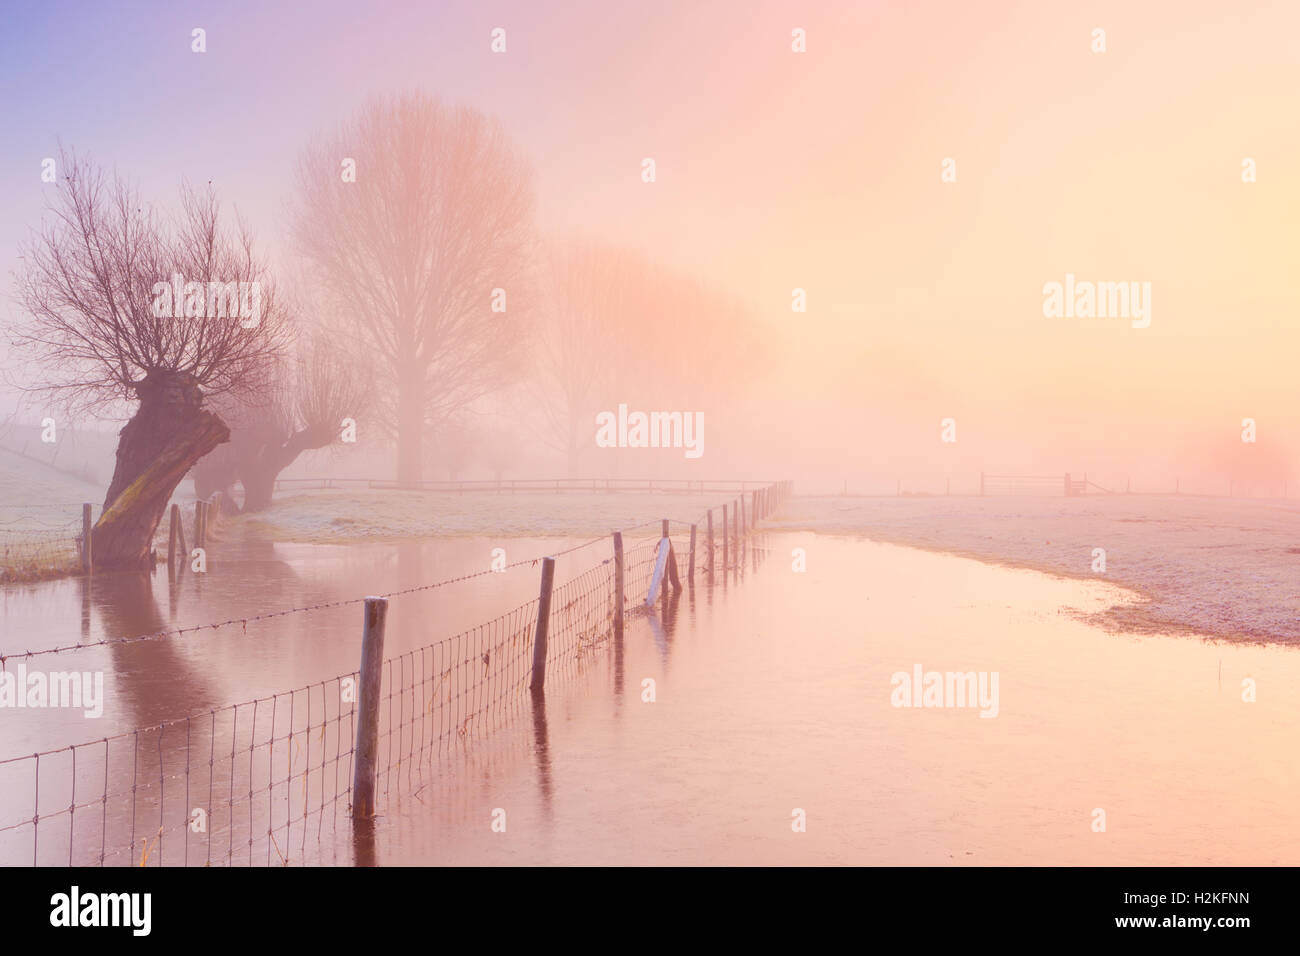 A foggy sunrise in winter along the River Lek in The Netherlands. - Stock Image